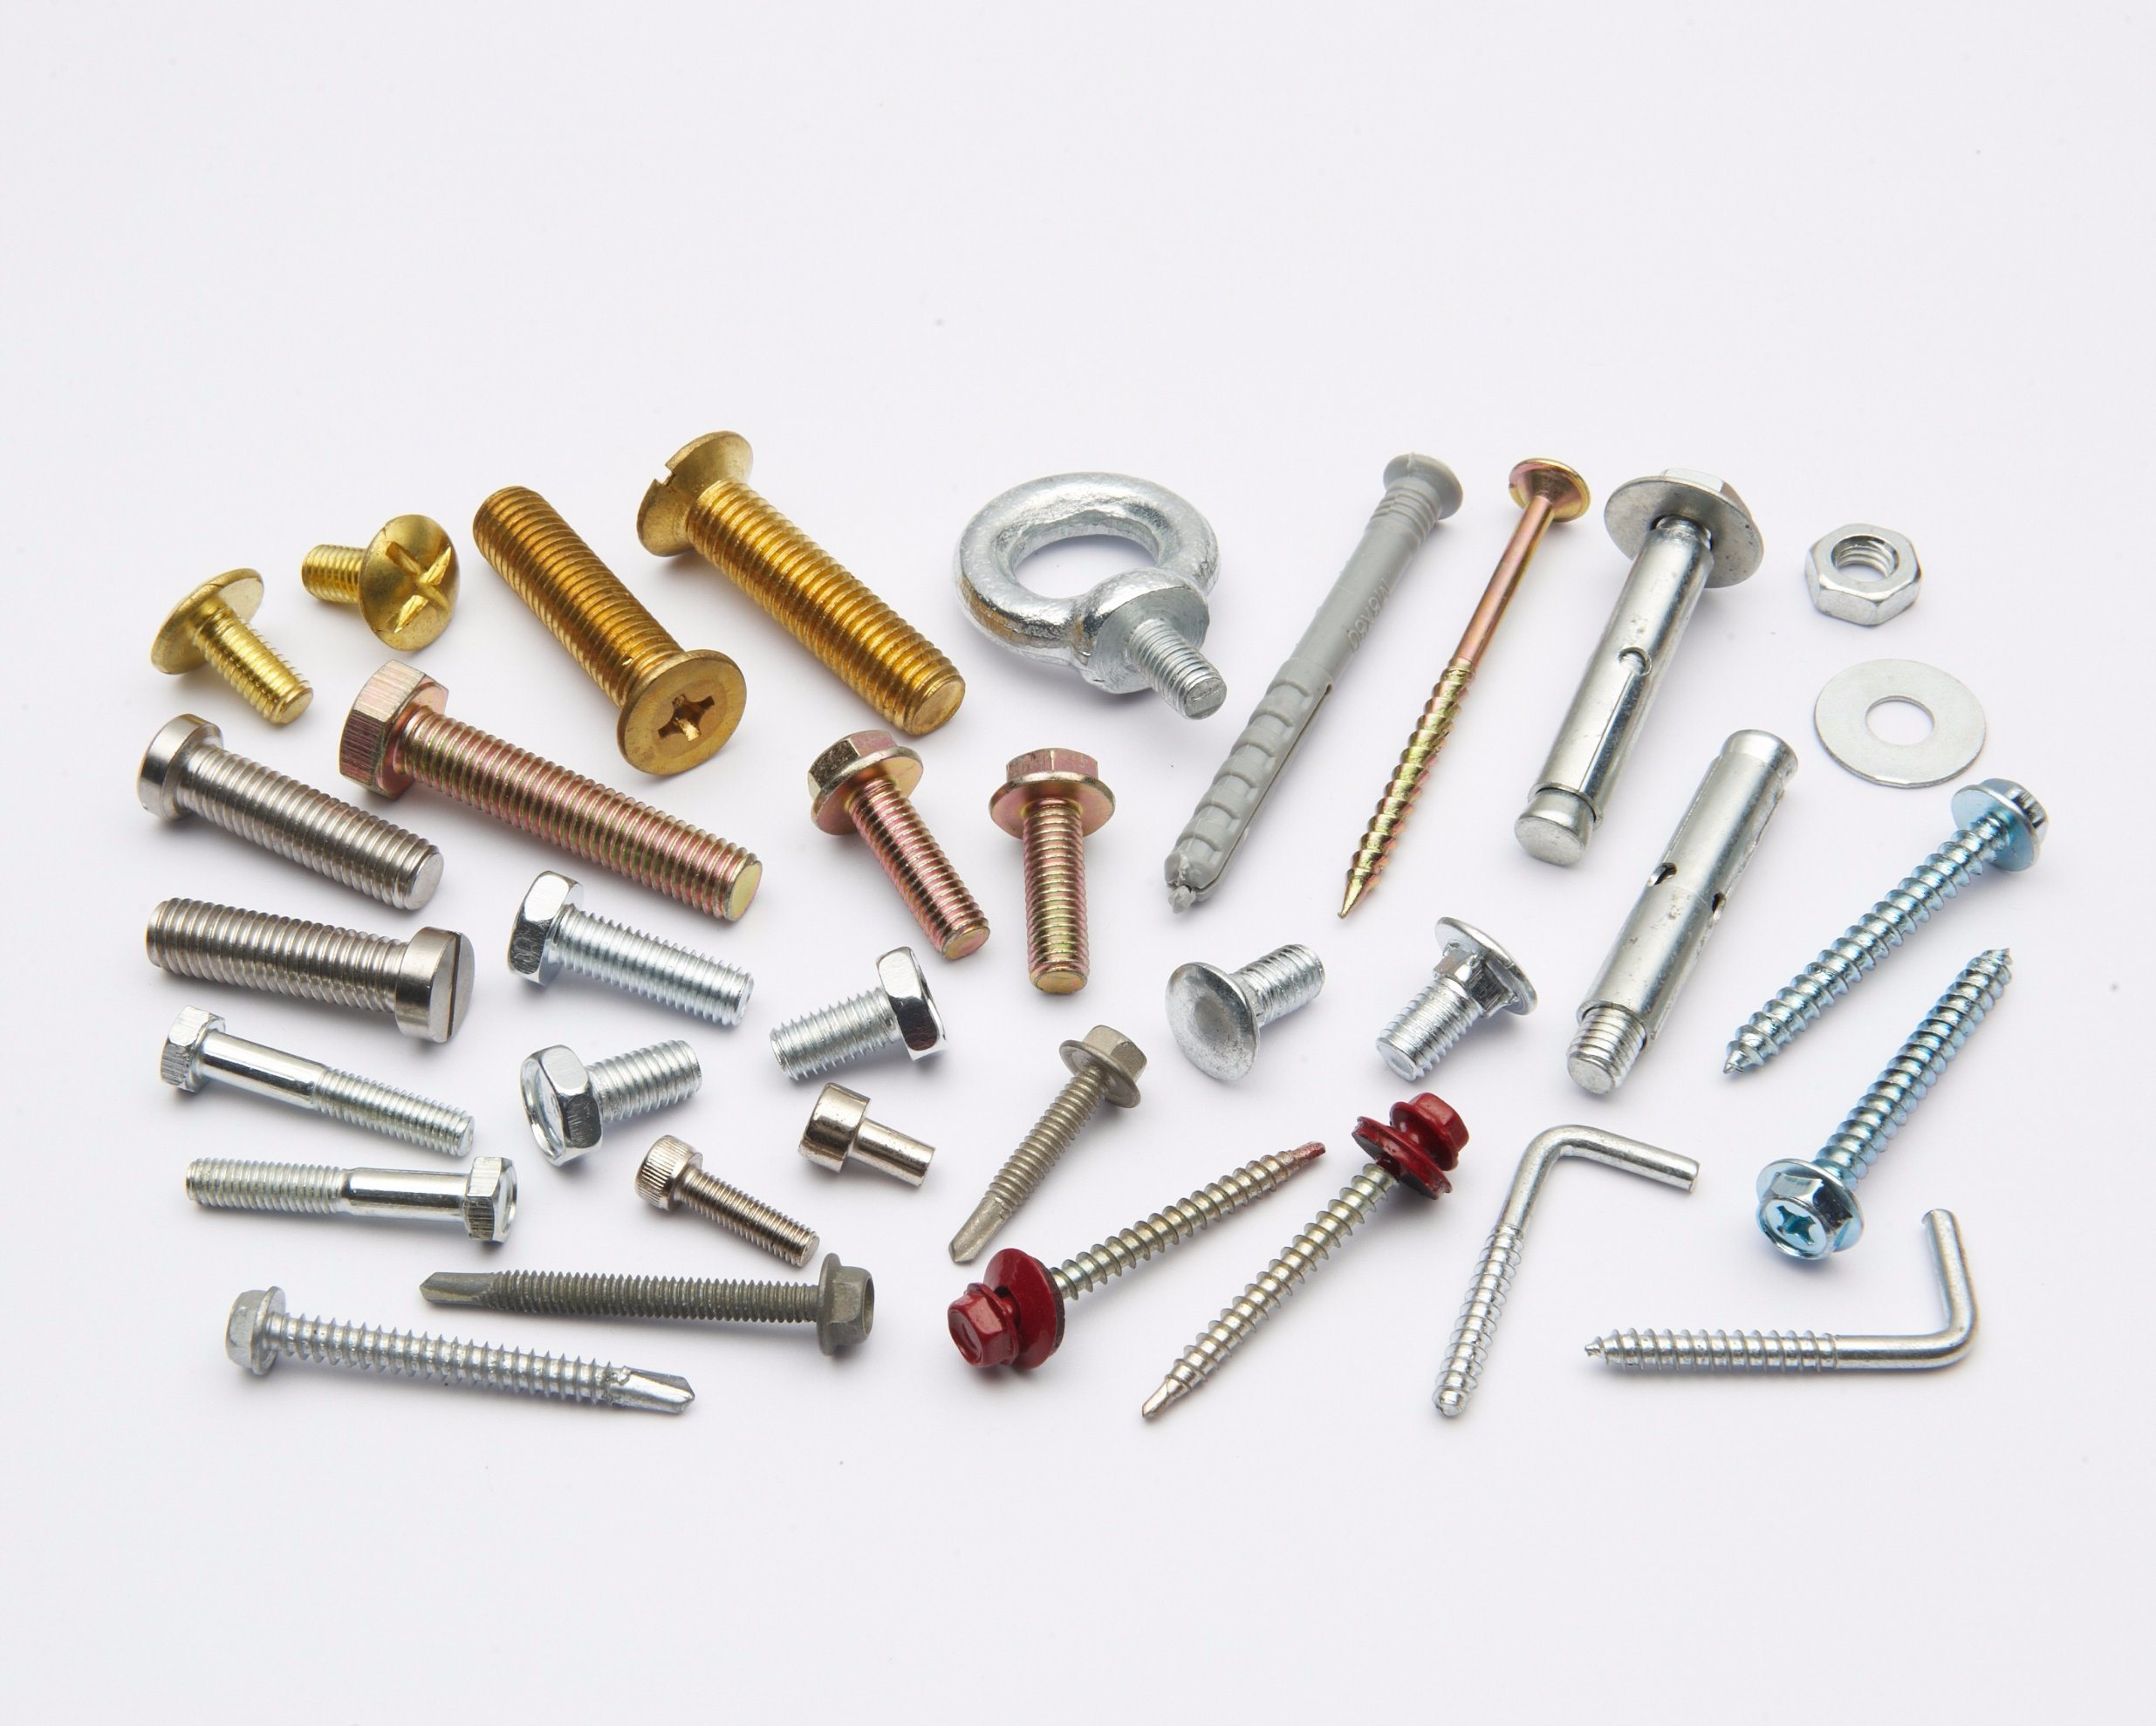 Hexagon Head Bolt with Large Head, OEM, High Strength, M6-M20, Carbon Steel